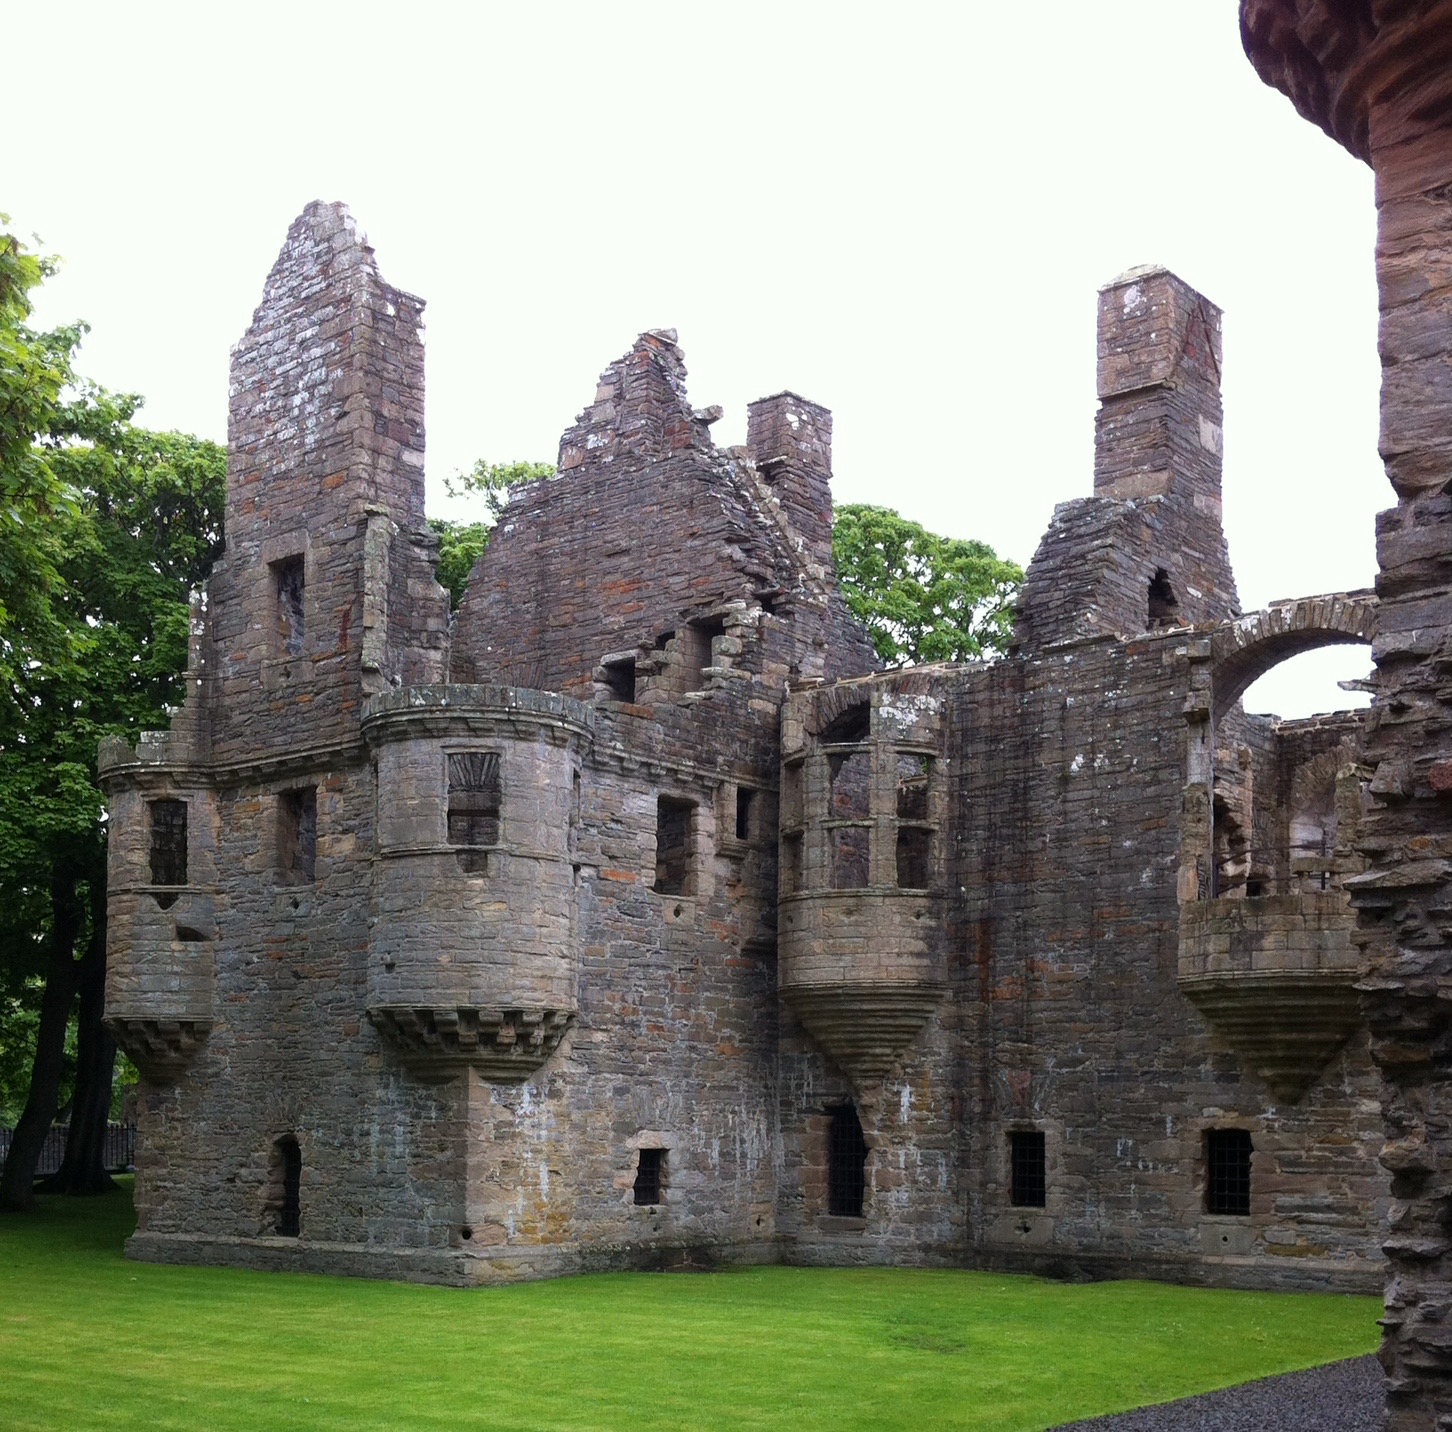 Bishop's and Earl's Palaces Orkney and Shetland Islands, The Bishop's Palace in Kirkland, Orkney Islands, Scotland ...